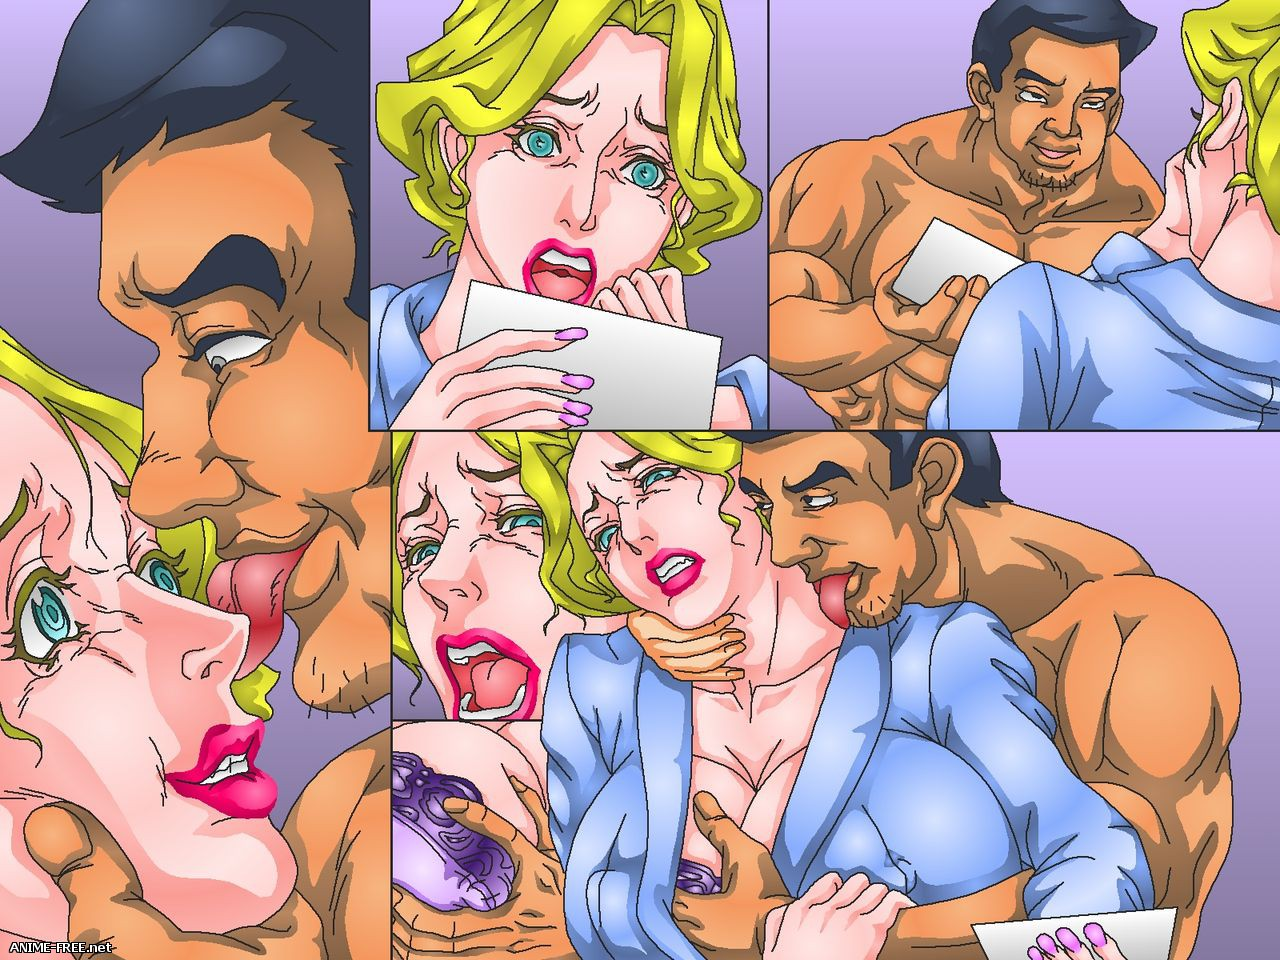 (Interracial Comix) Novelties from John Persons, Pegasus, Smudge, Sam 7 [Uncen] [ENG] Porno Comics